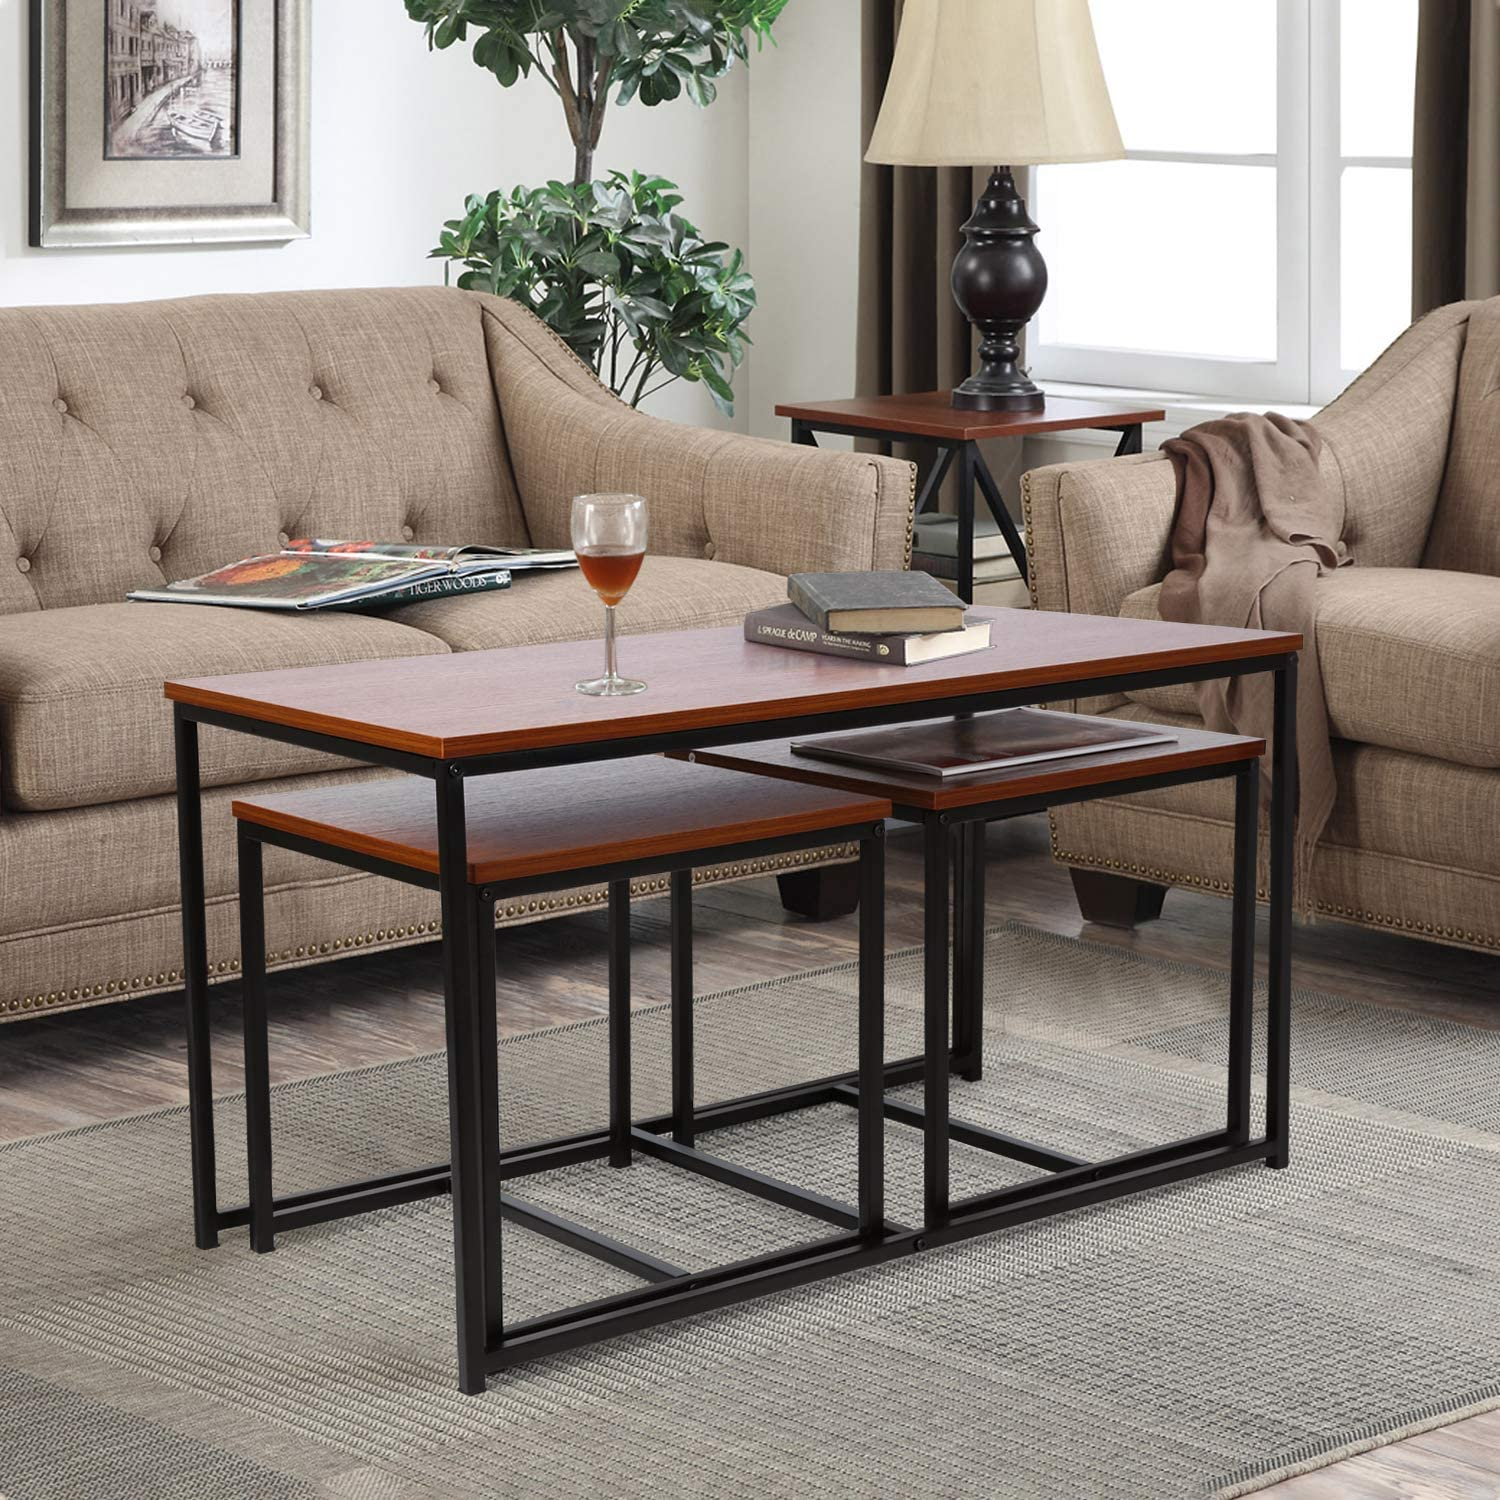 Amazon Com Living Room Table Set Amzdeal 3 Piece Table Set Includes Coffee Table And 2 End Tables Coffee Table Set Occasional Set For Home Office Walnut Kitchen Dining